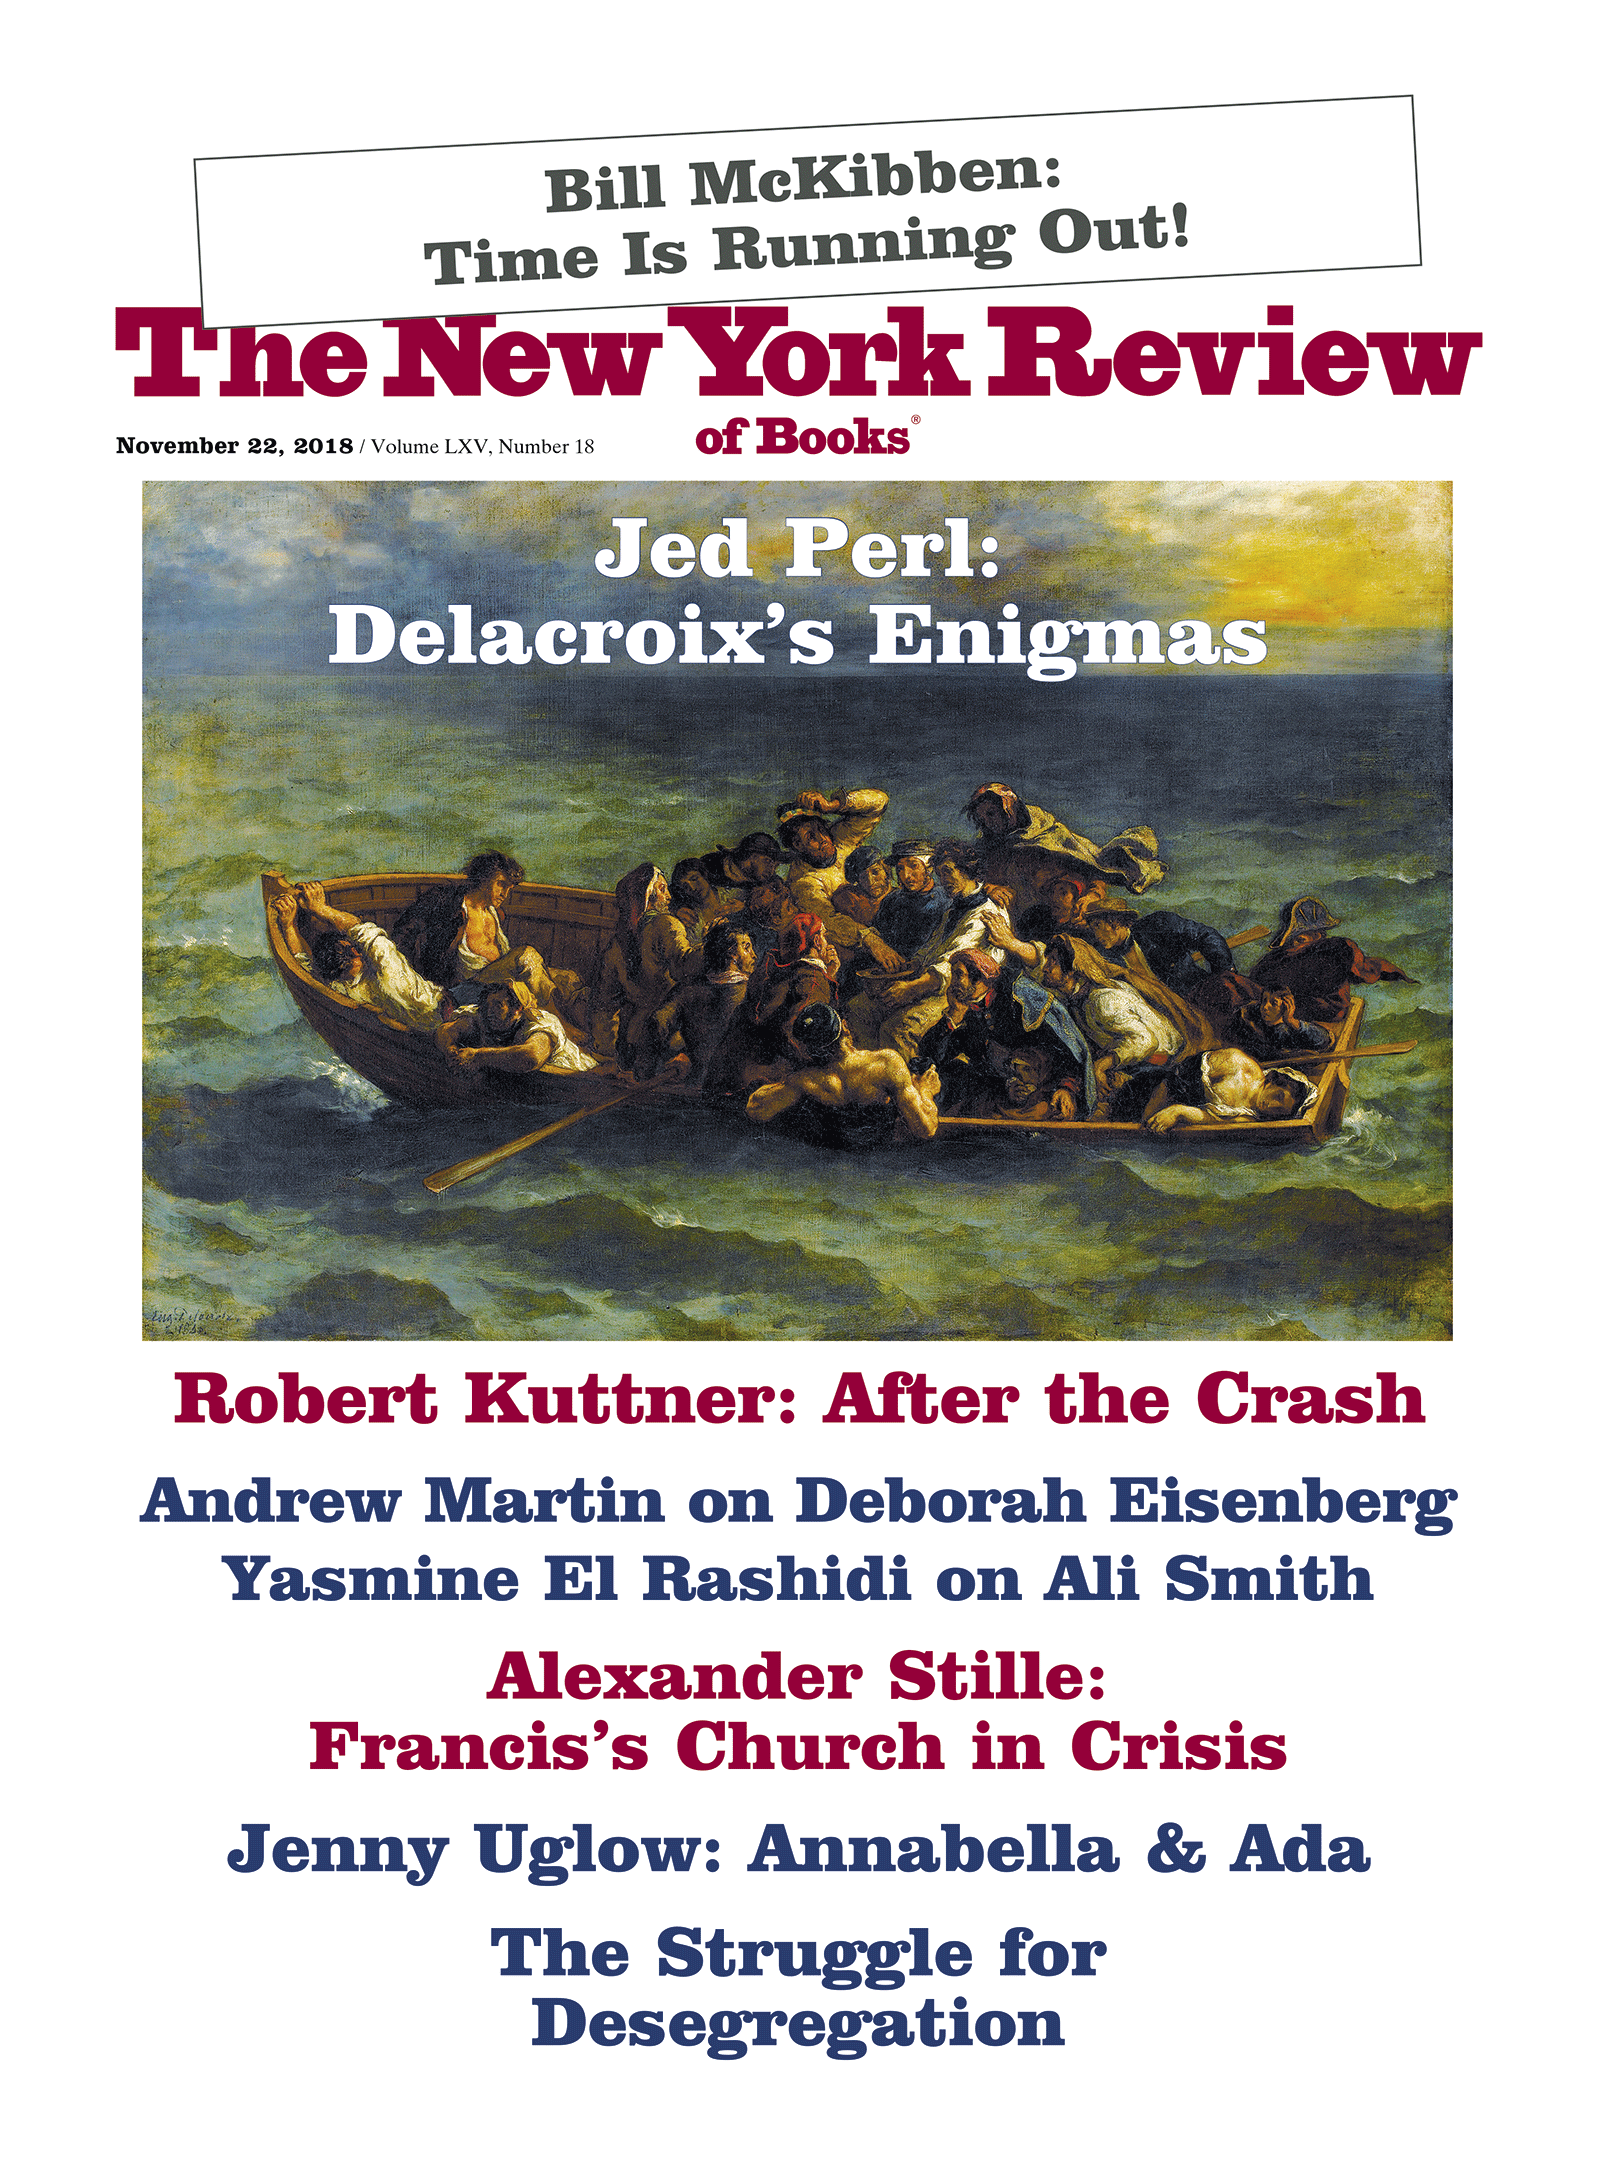 Image of the November 22, 2018 issue cover.